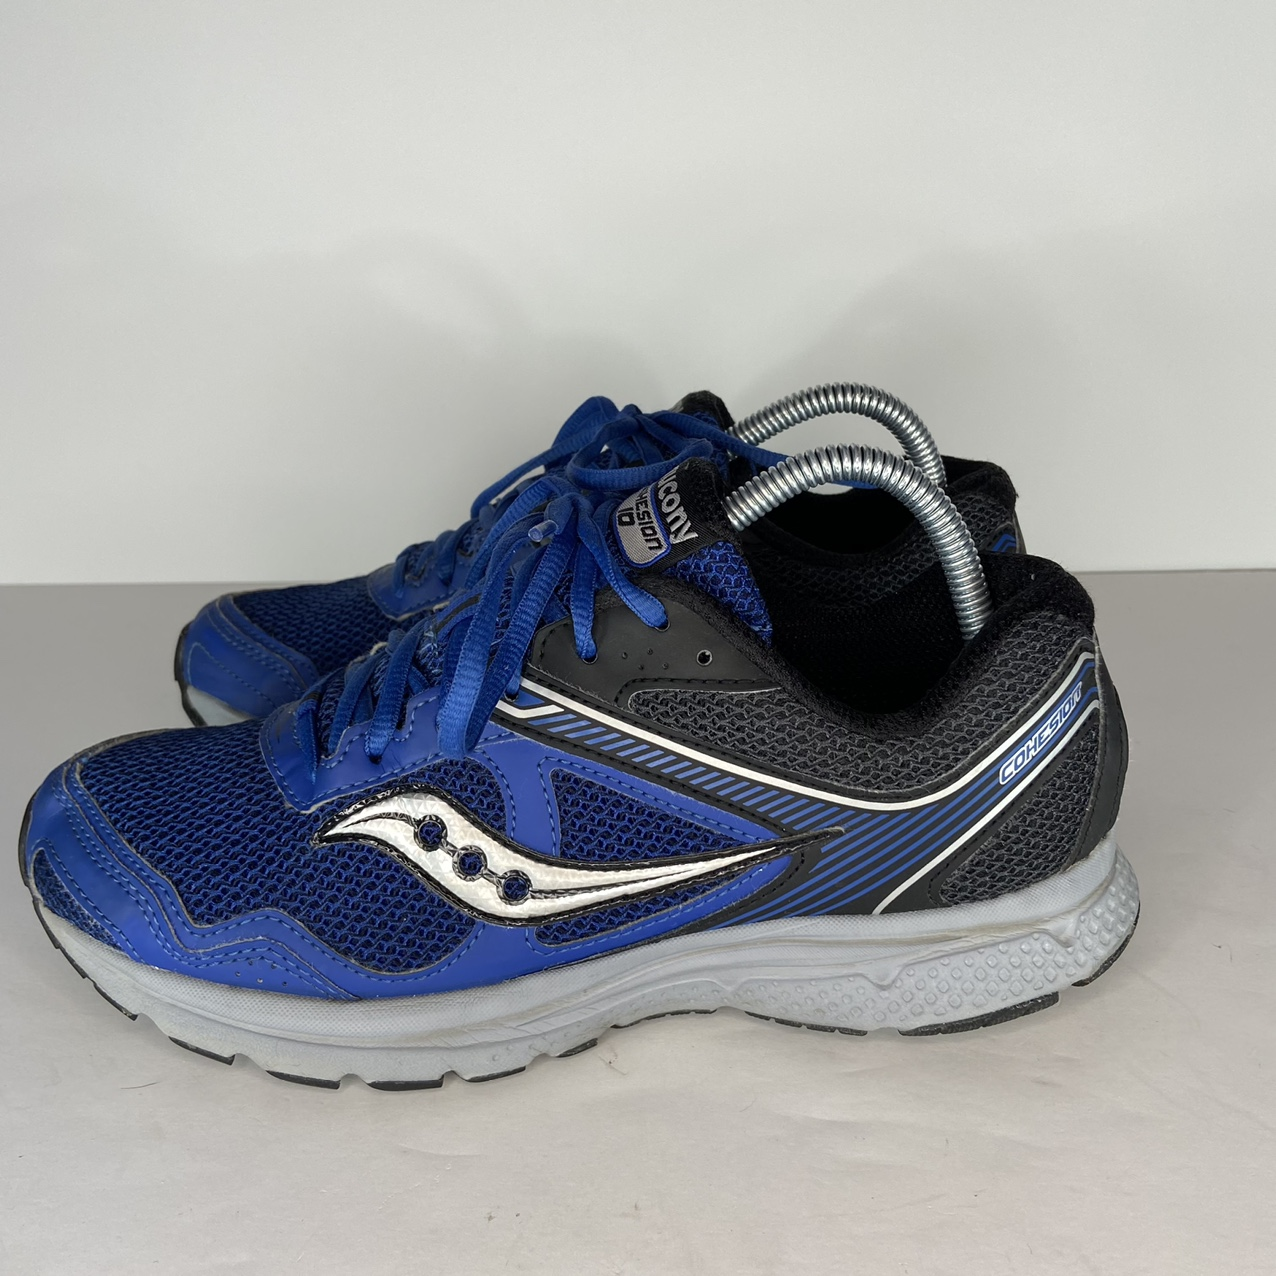 Product Image 1 - Saucony cohesion 10 sneakers. Men's